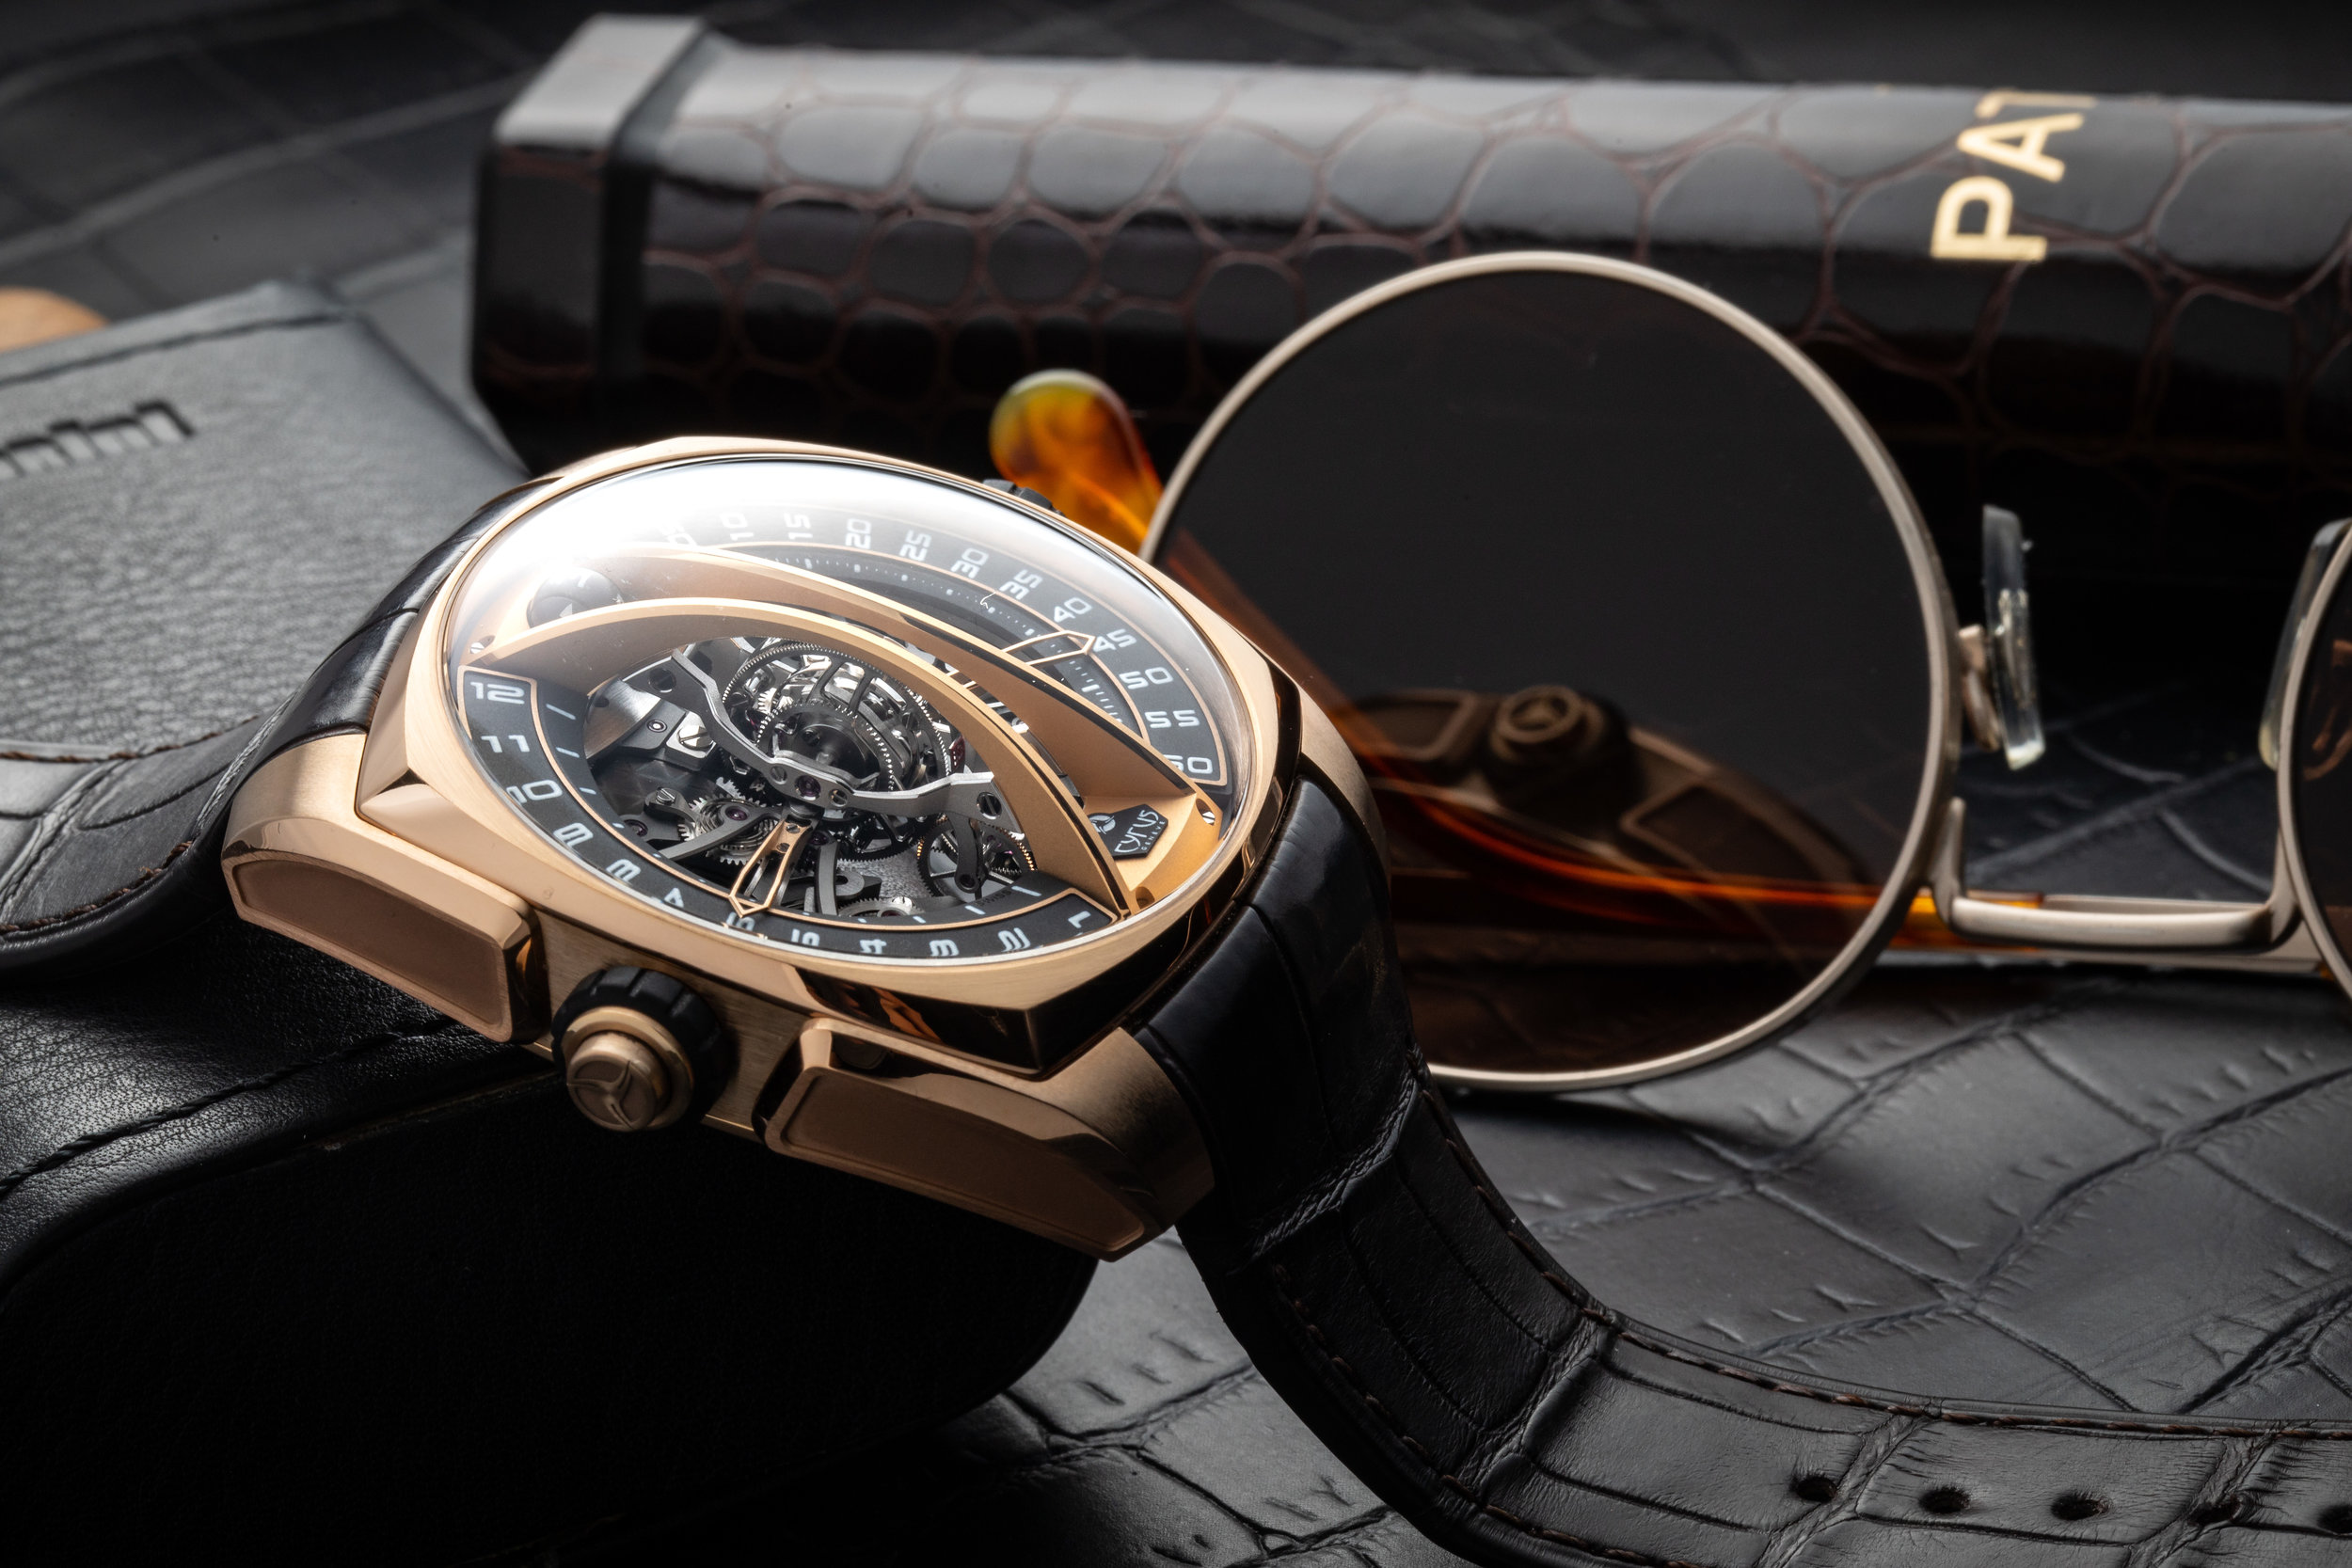 INTRODUCING THE CYRUS KLEPCYS VERTICAL SKELETON TOURBILLON